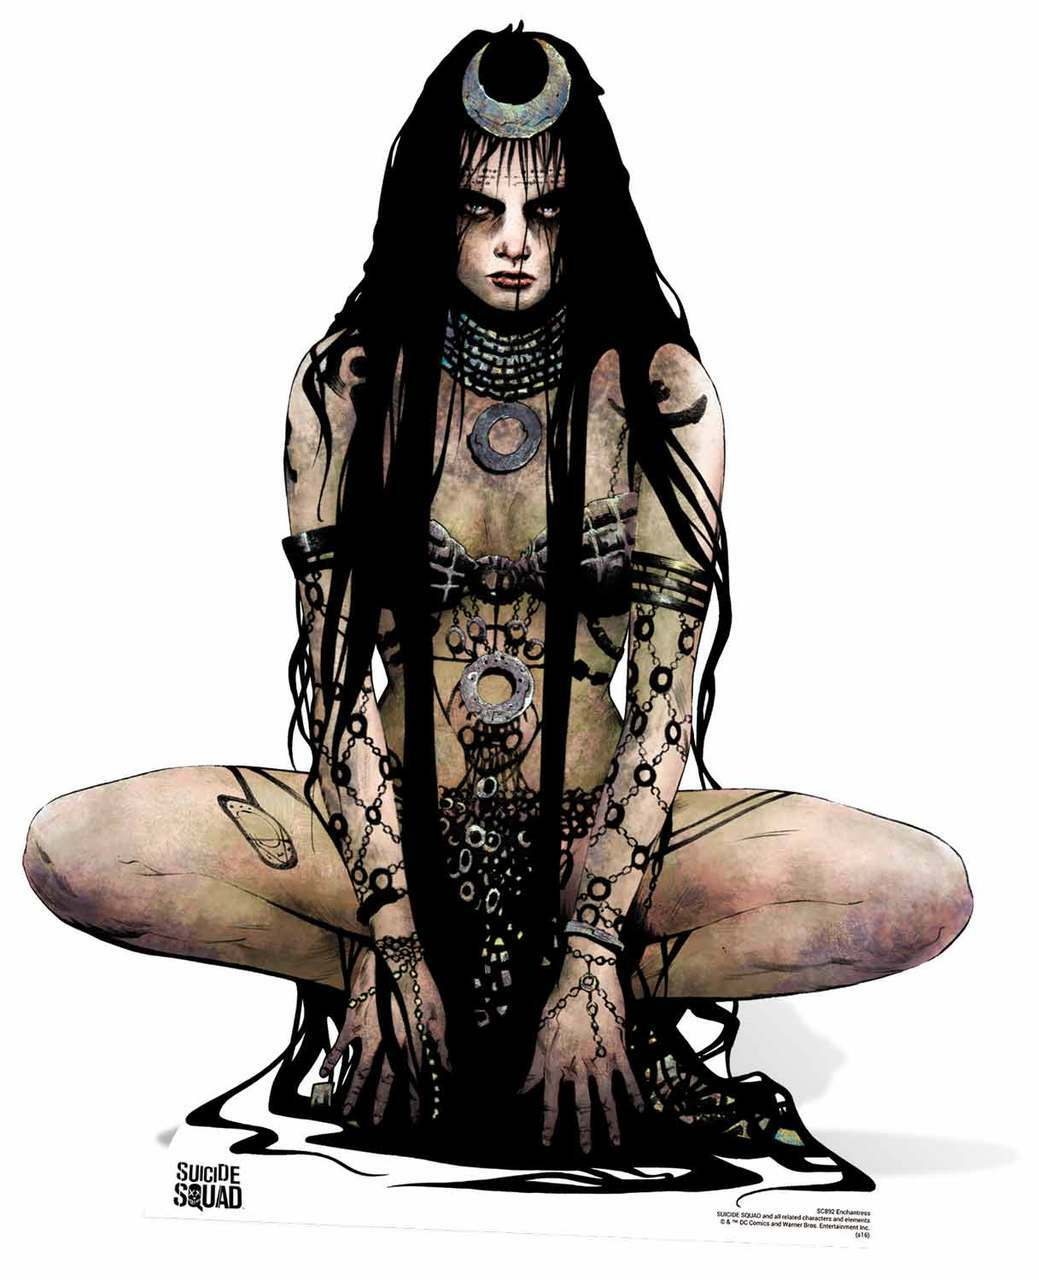 3e4a21576806 Enchantress Suicide Squad Comic Art Lifesize Cardboard Cutout ...